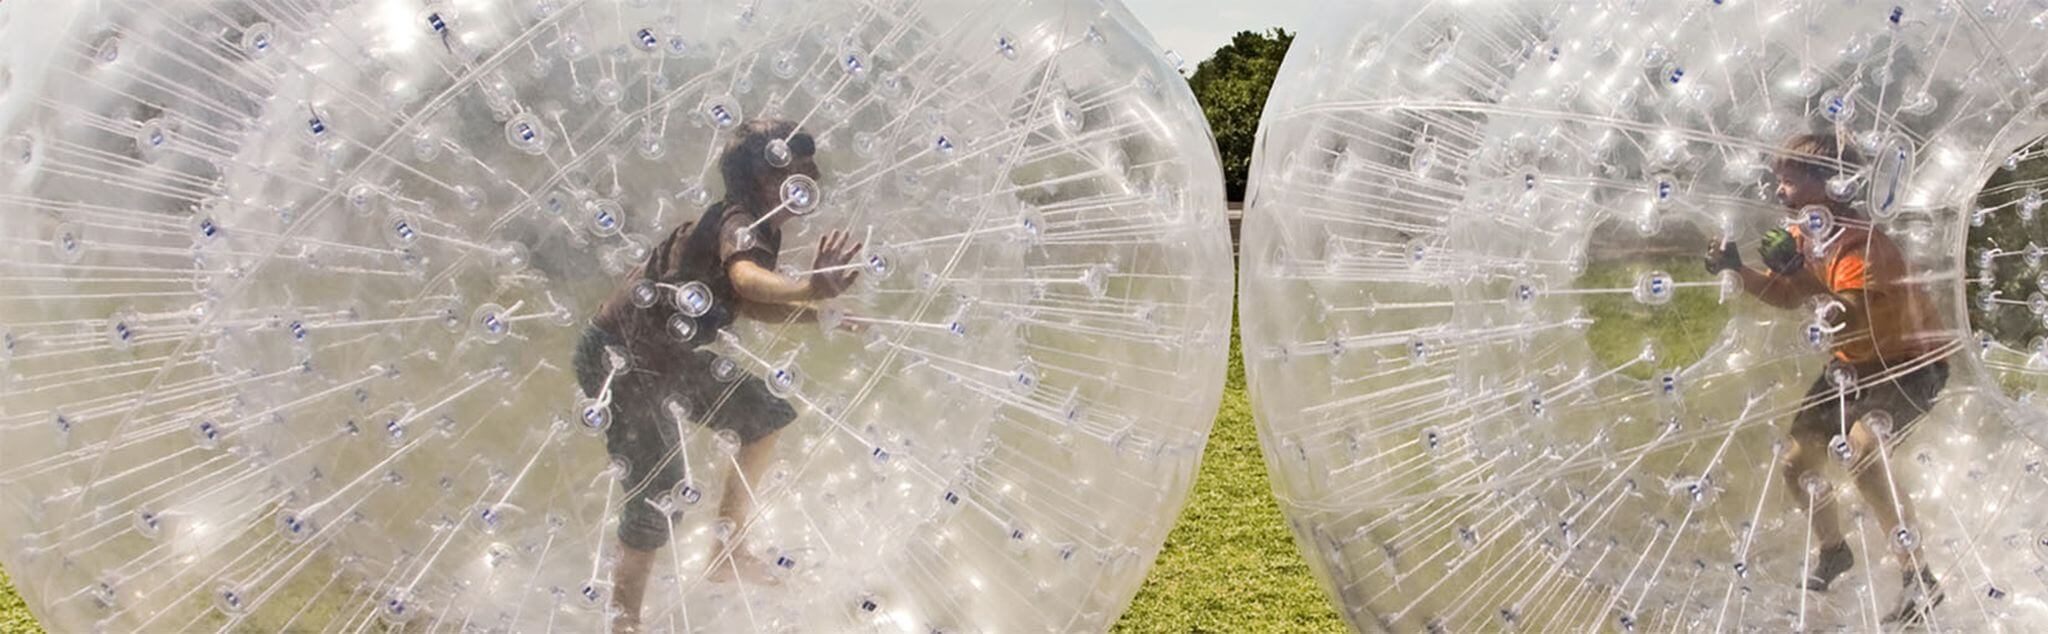 Bubble Football a Toscana